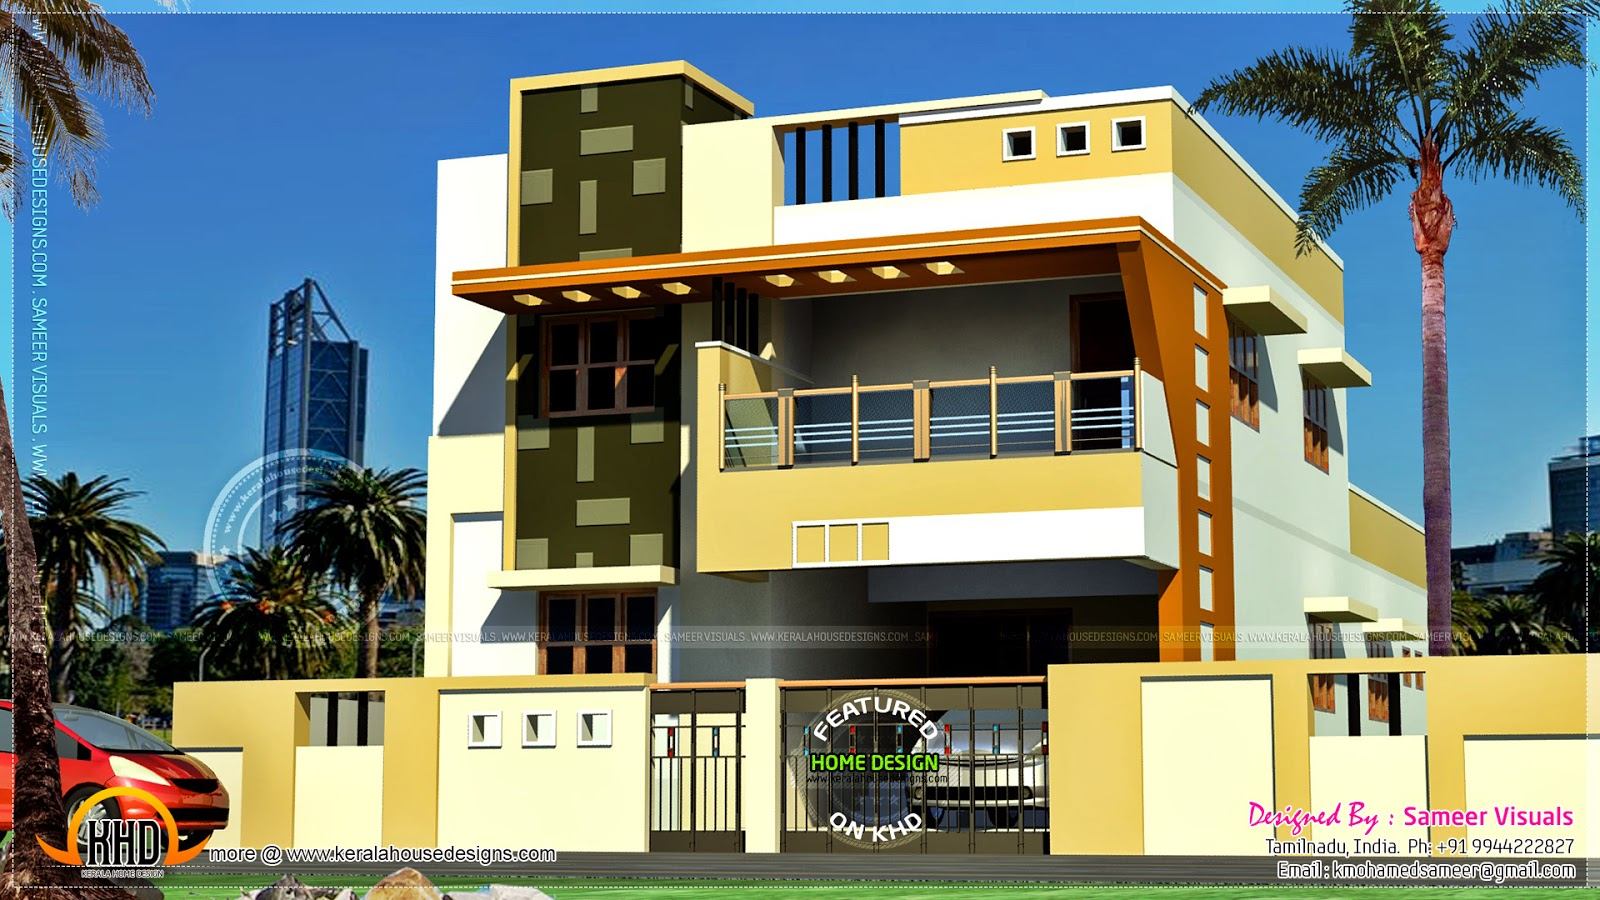 Modern south indian house design kerala home design and Homes design images india